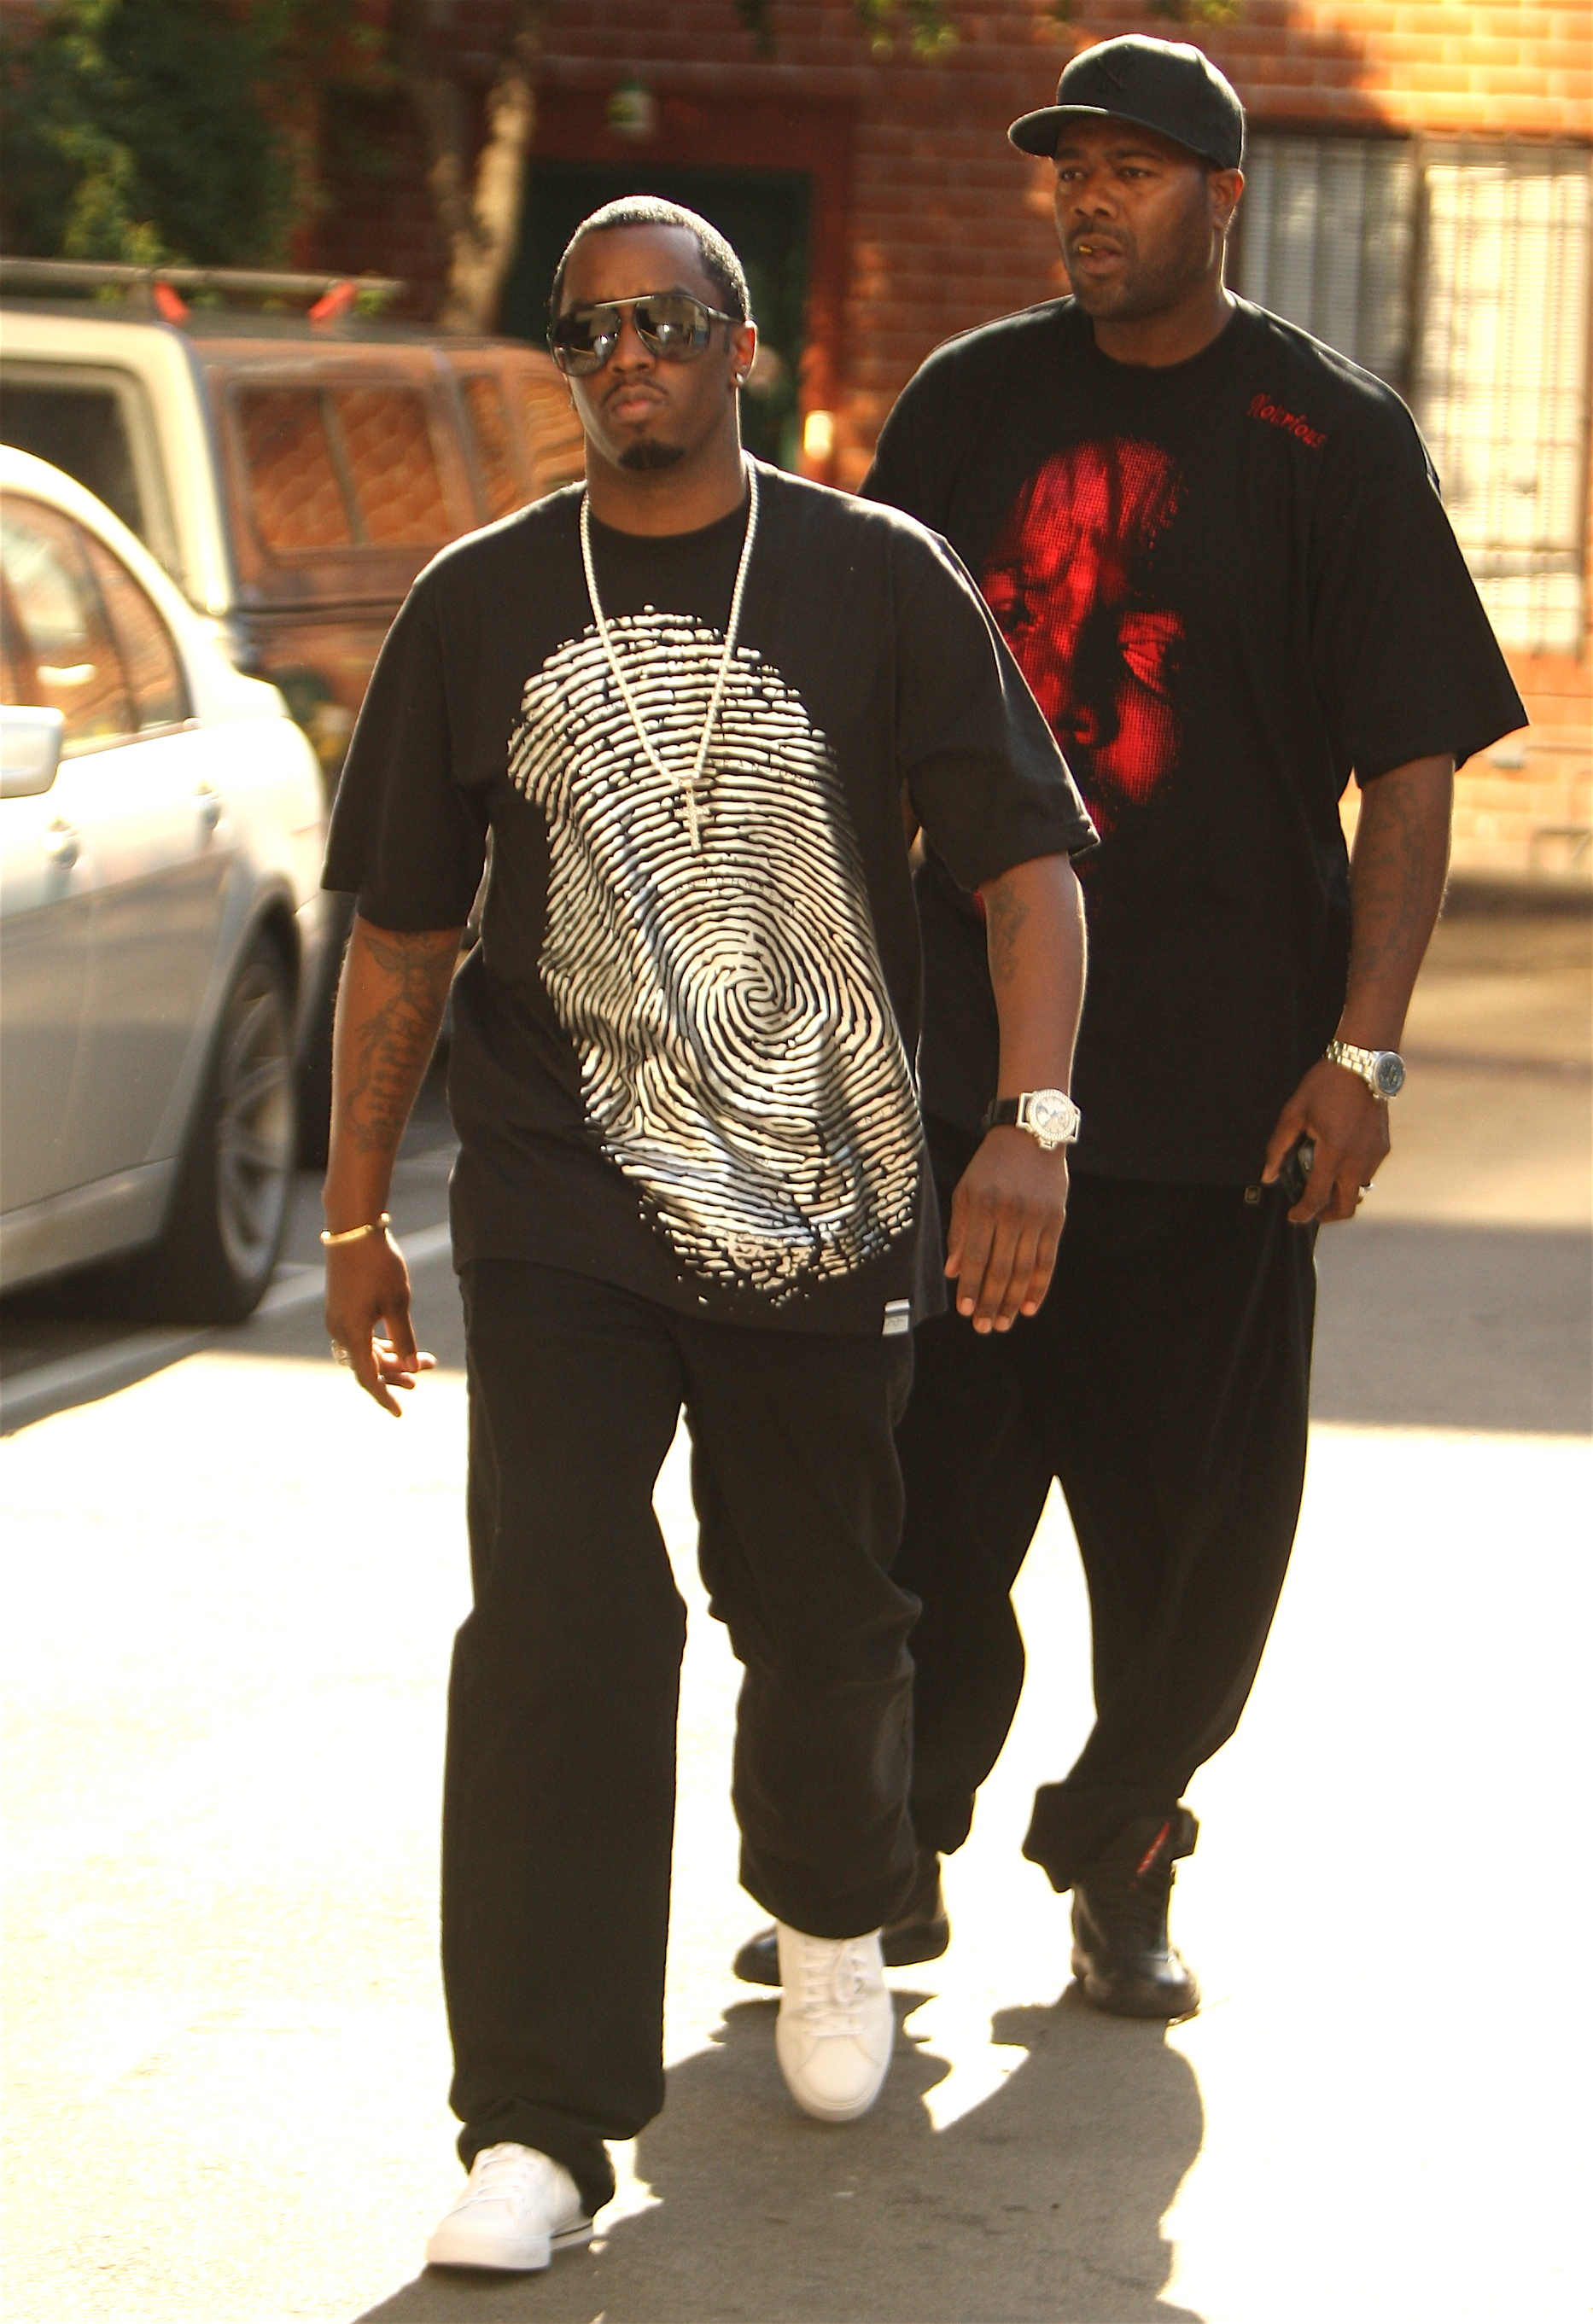 Diddys former bodyguard claims Diddy set up Biggie